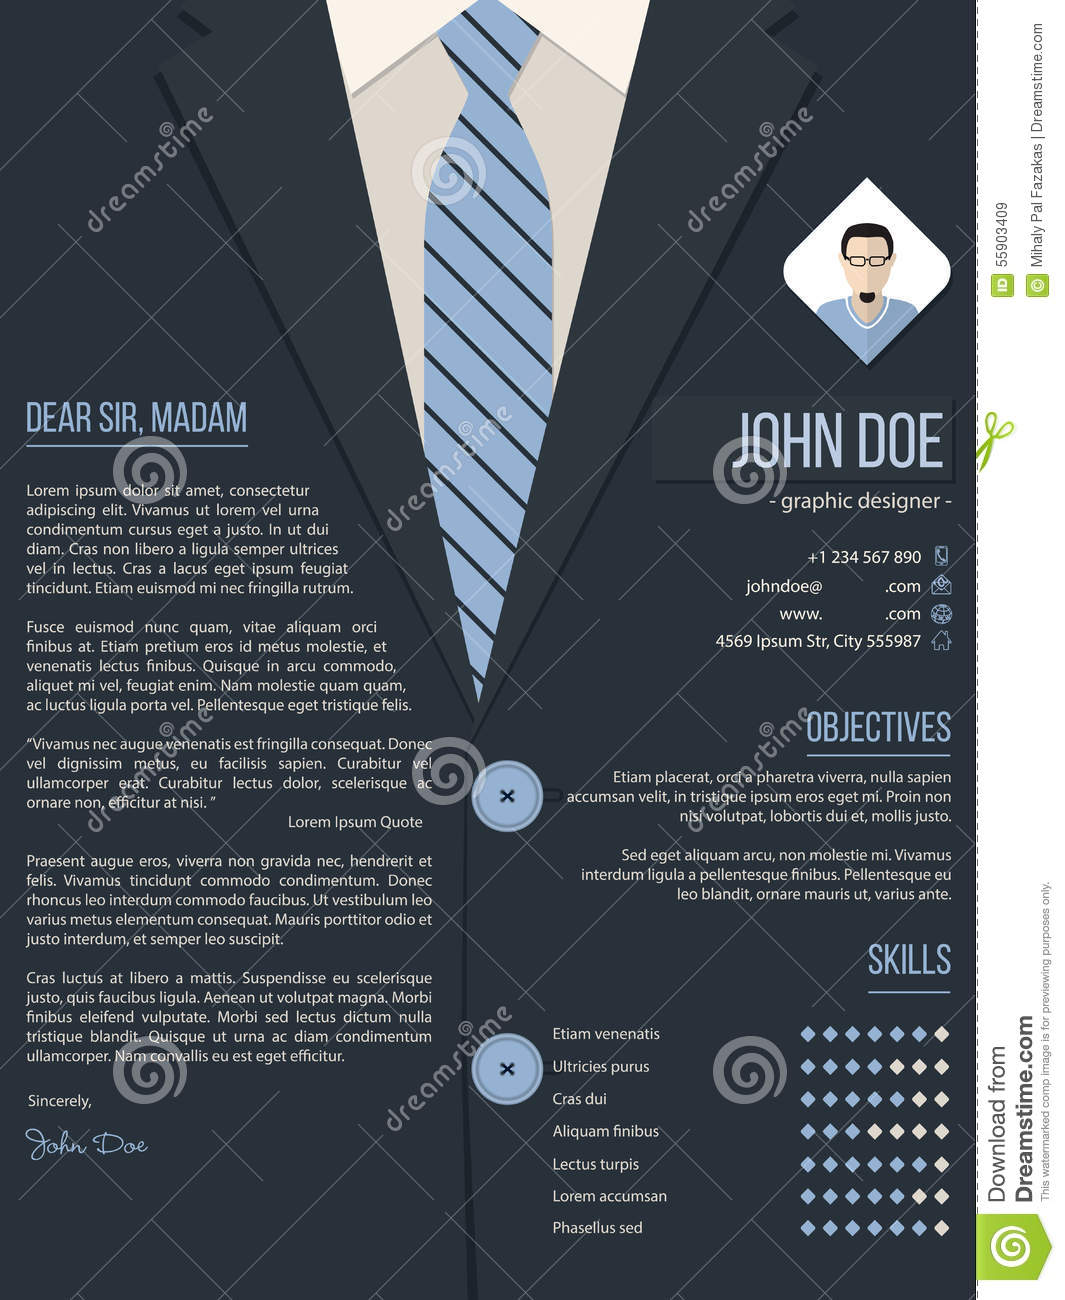 Cool Cover Letter Resume Template With Business Suit Background Stock Vector  Image 55903409